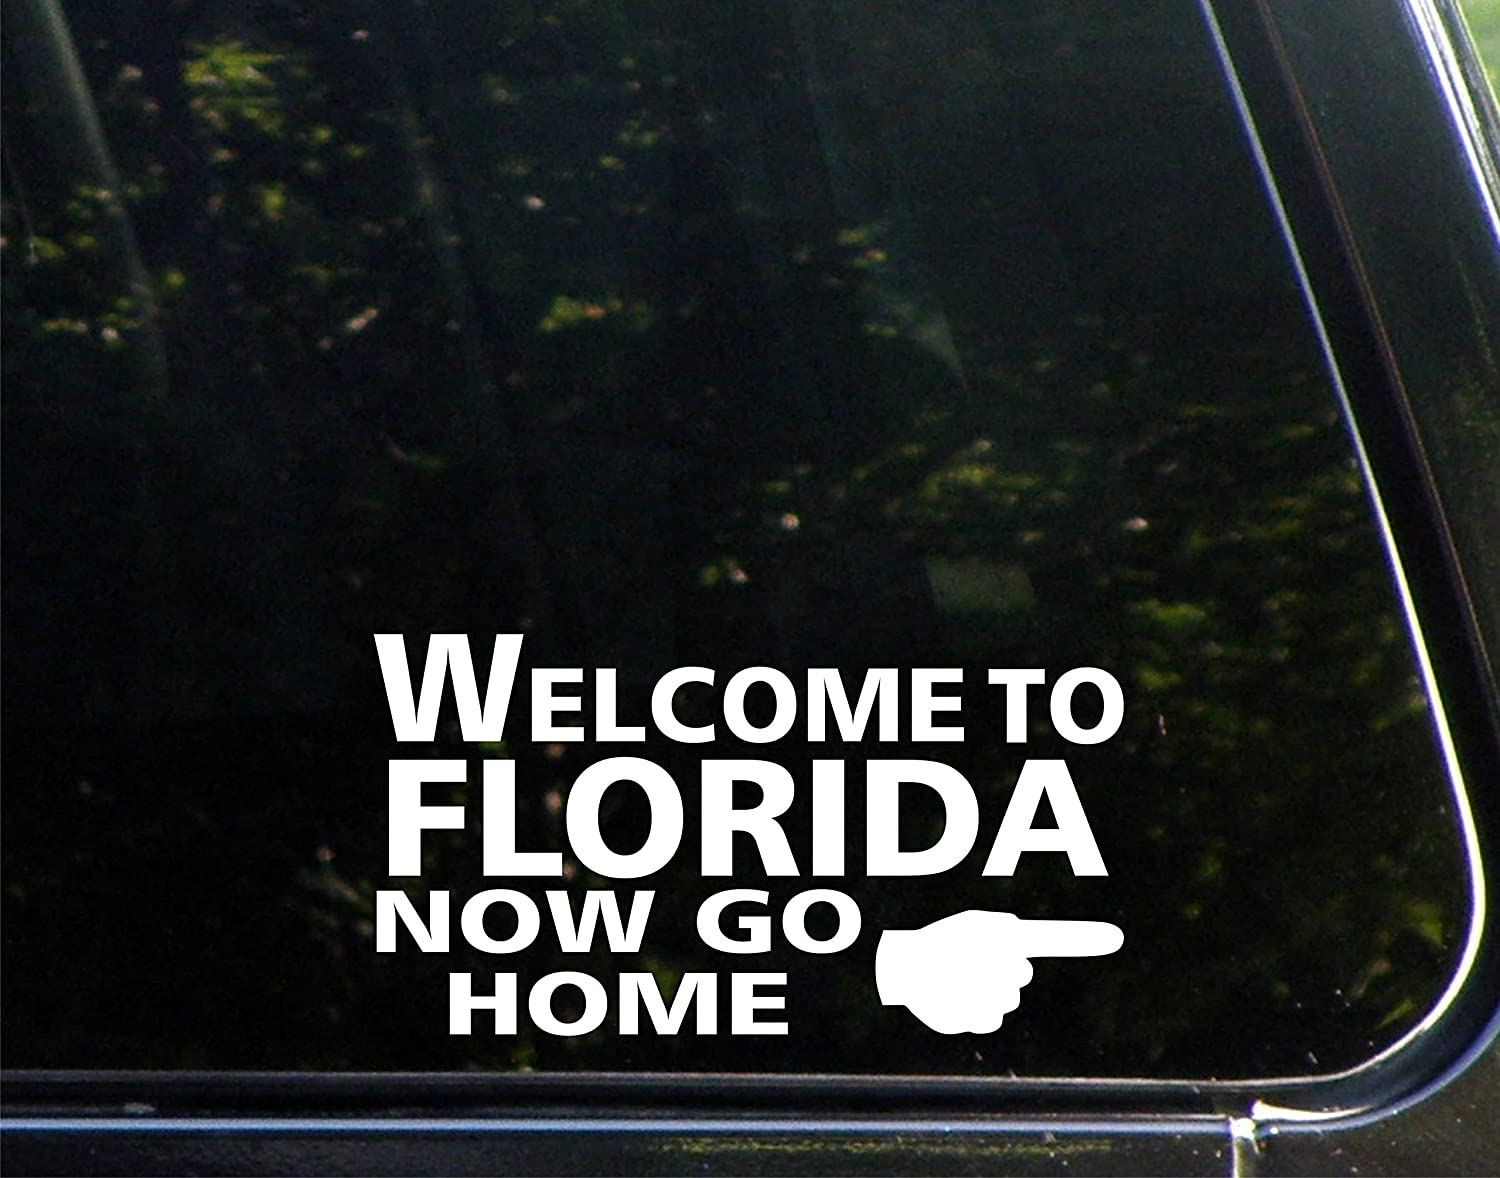 Amazoncom Welcome To Florida Now Go Home X Vinyl Die - How to make car decals at home